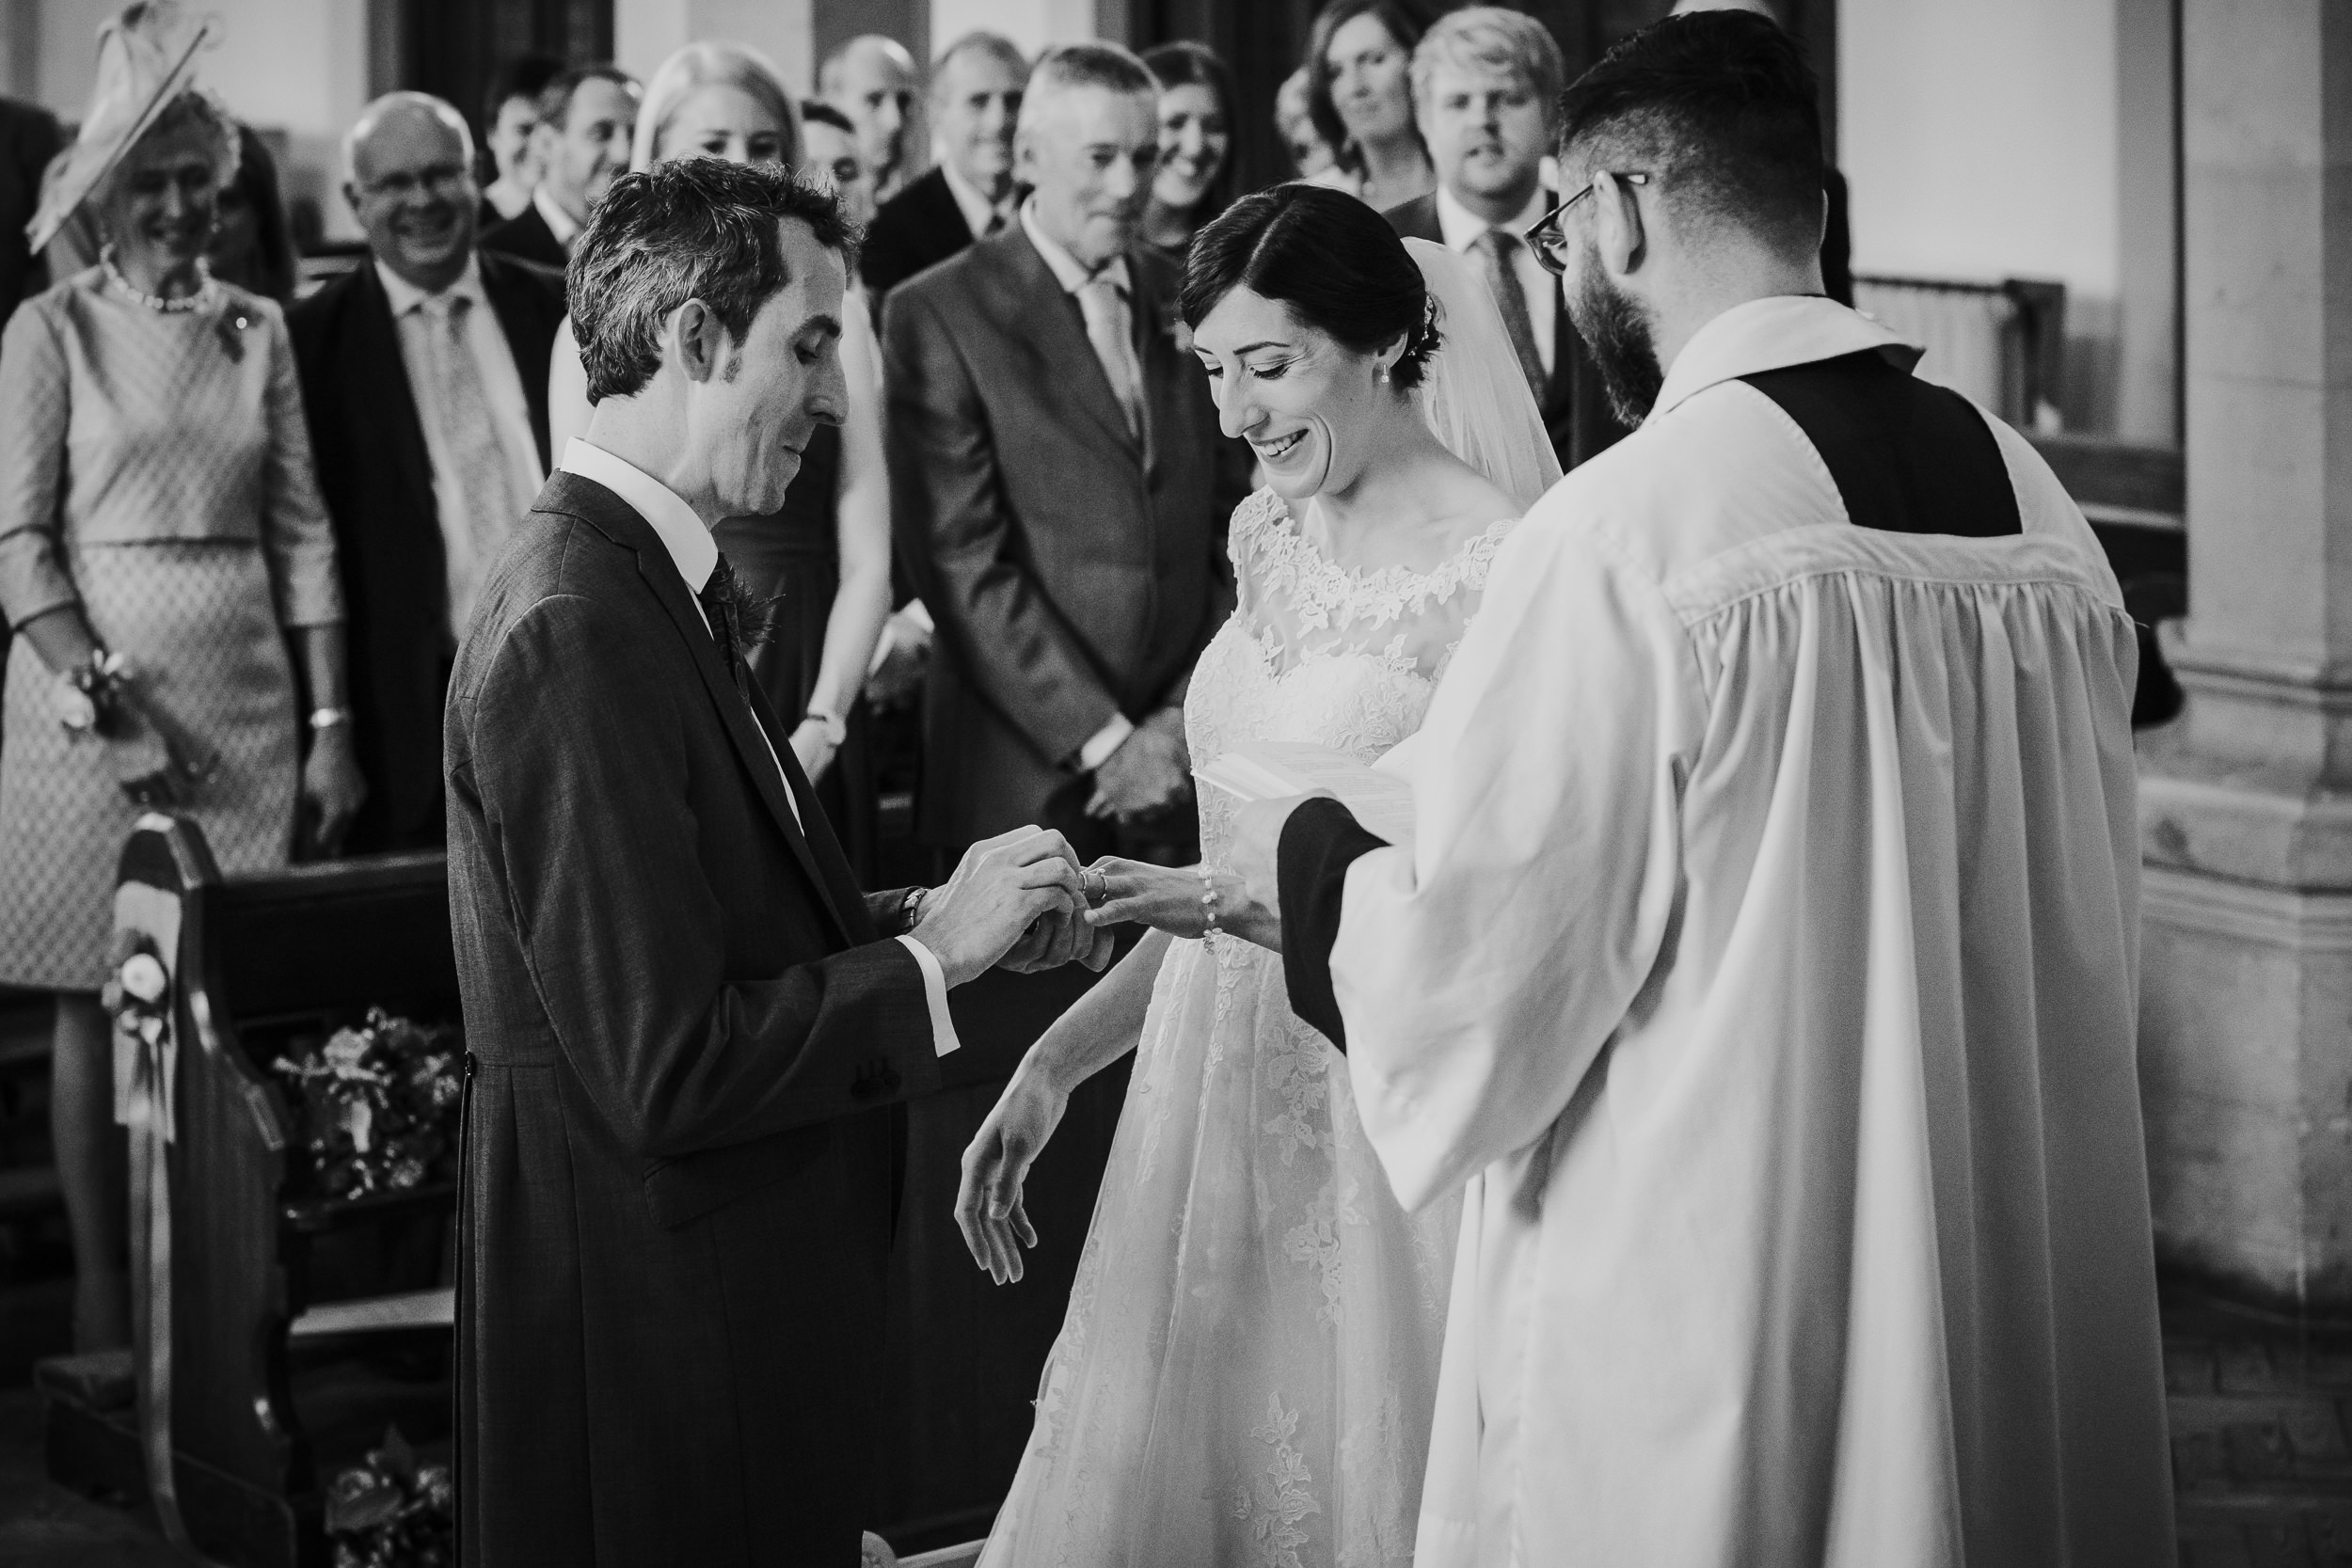 The Bride and Groom laughing as they struggle with the wedding ring